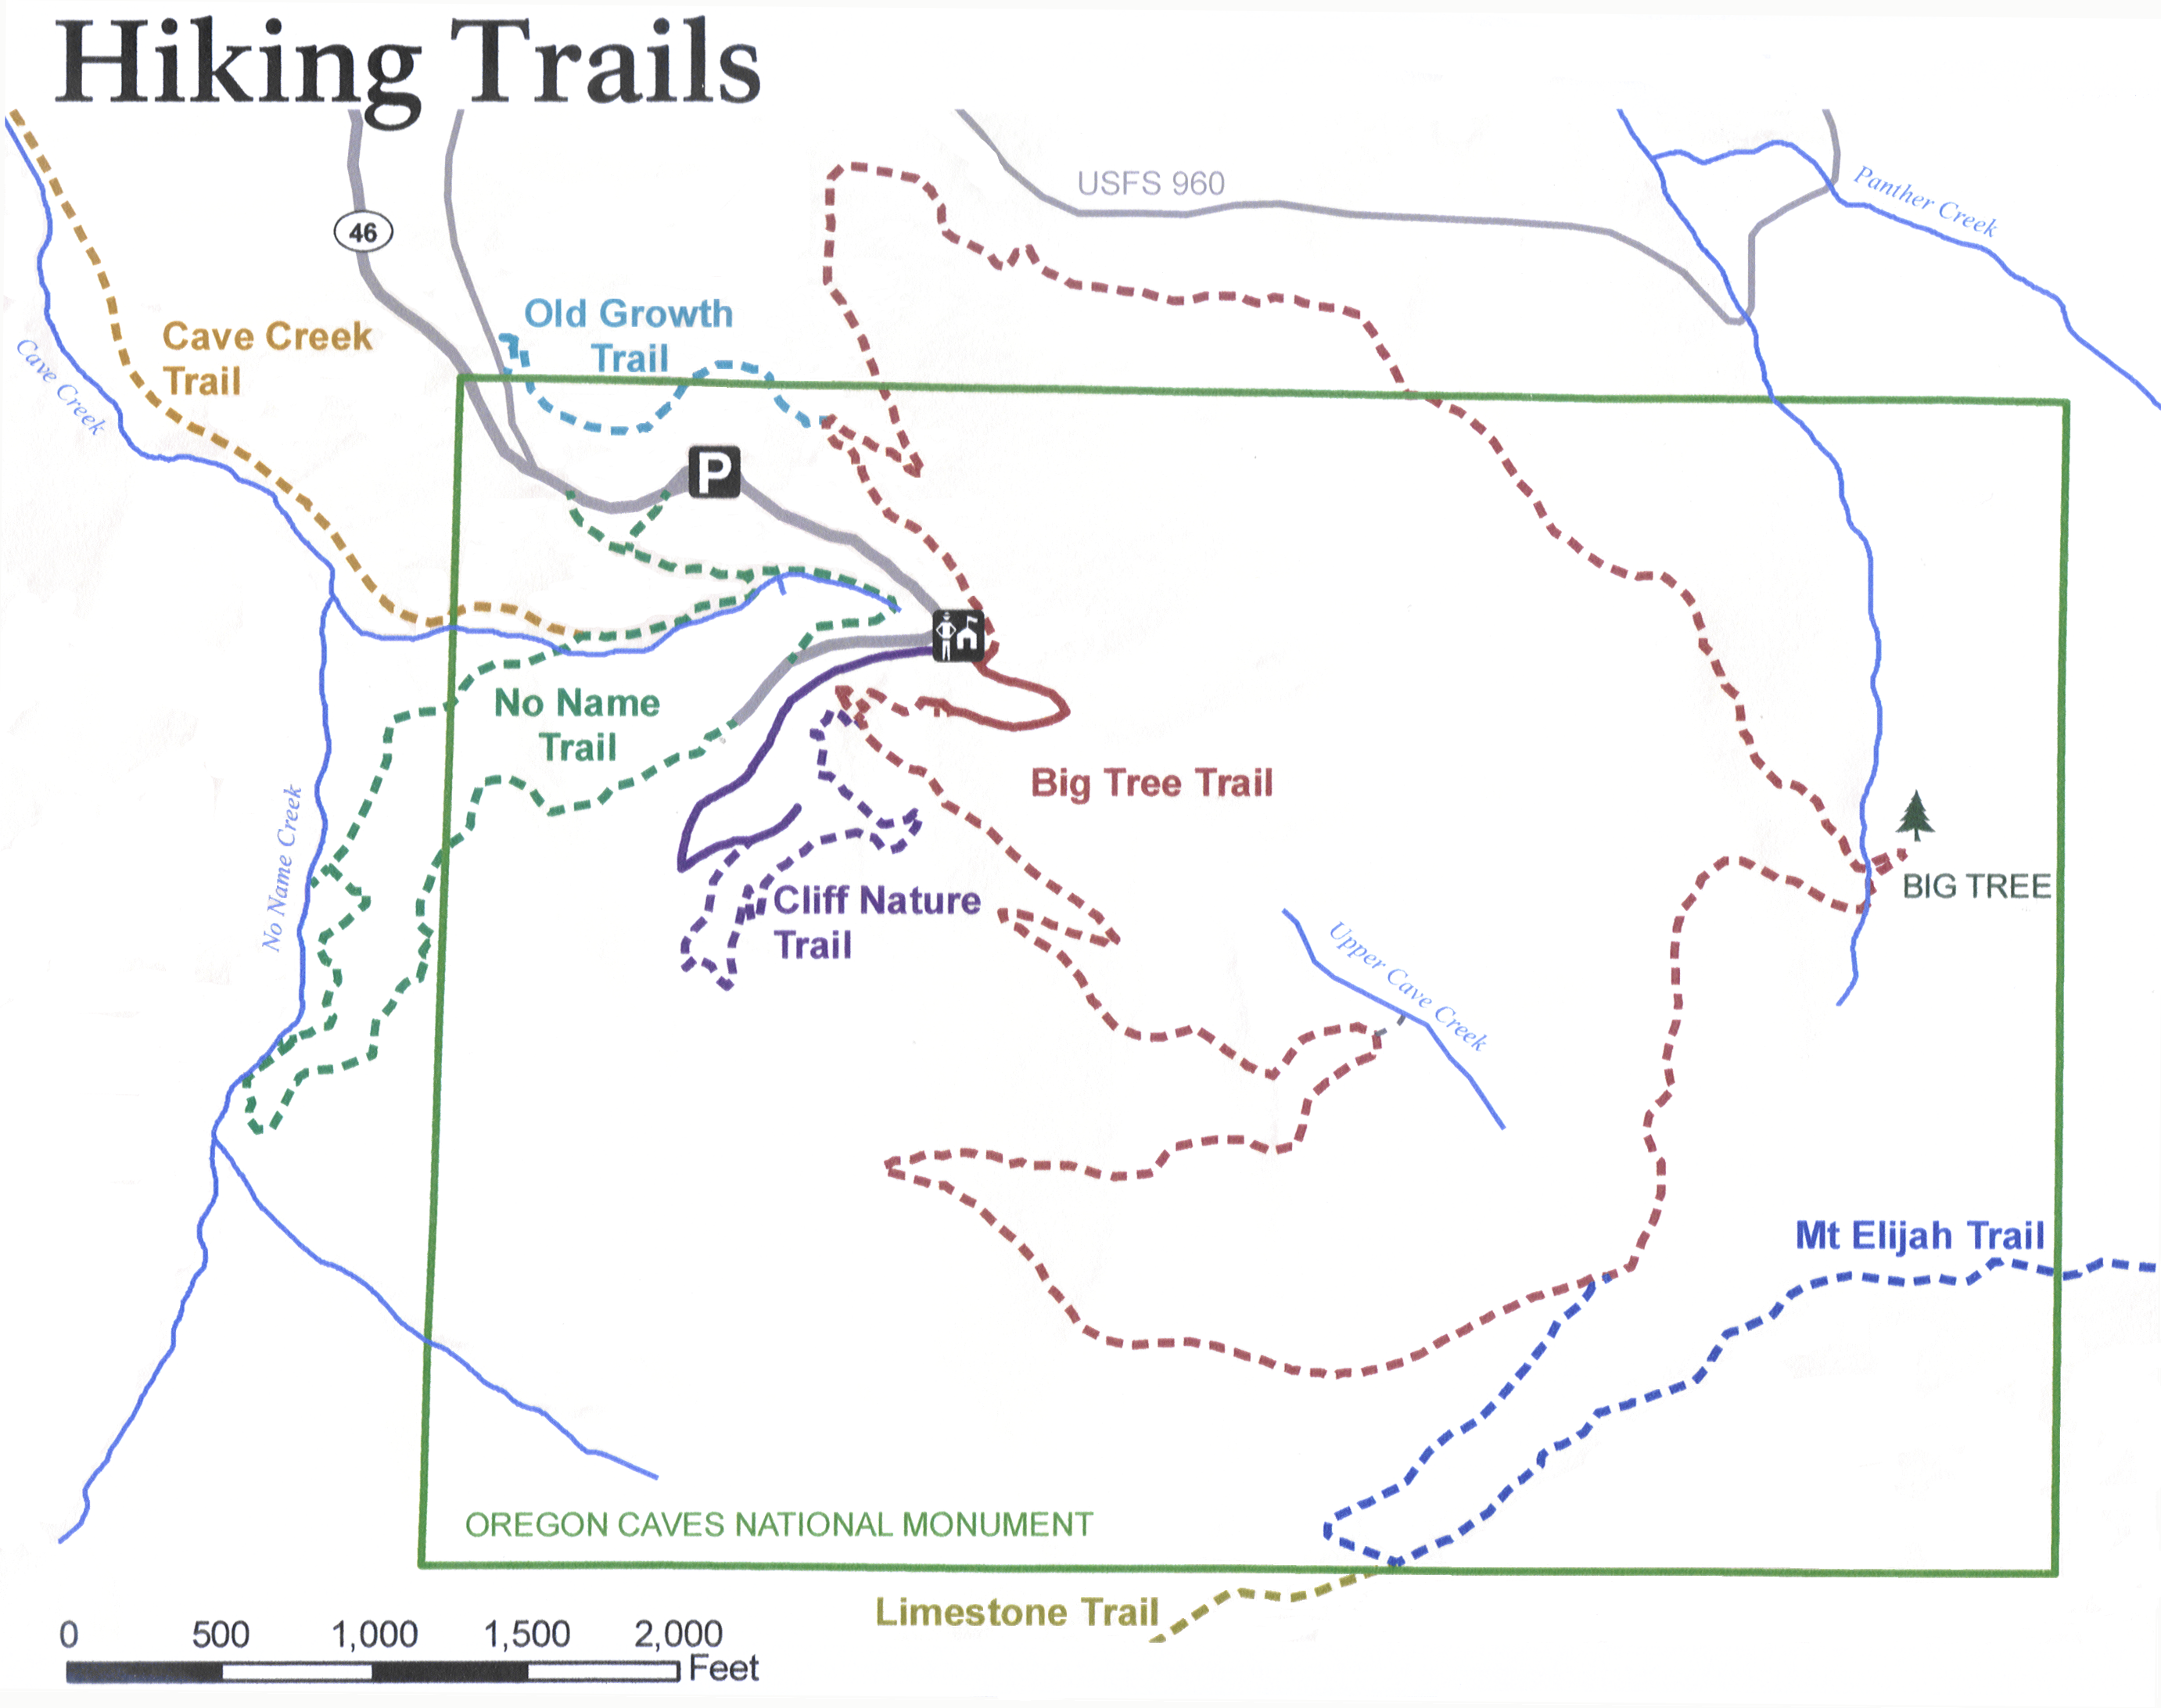 FileORCA Hiking Trail Mappng Wikimedia Commons - Oregon hiking trails map